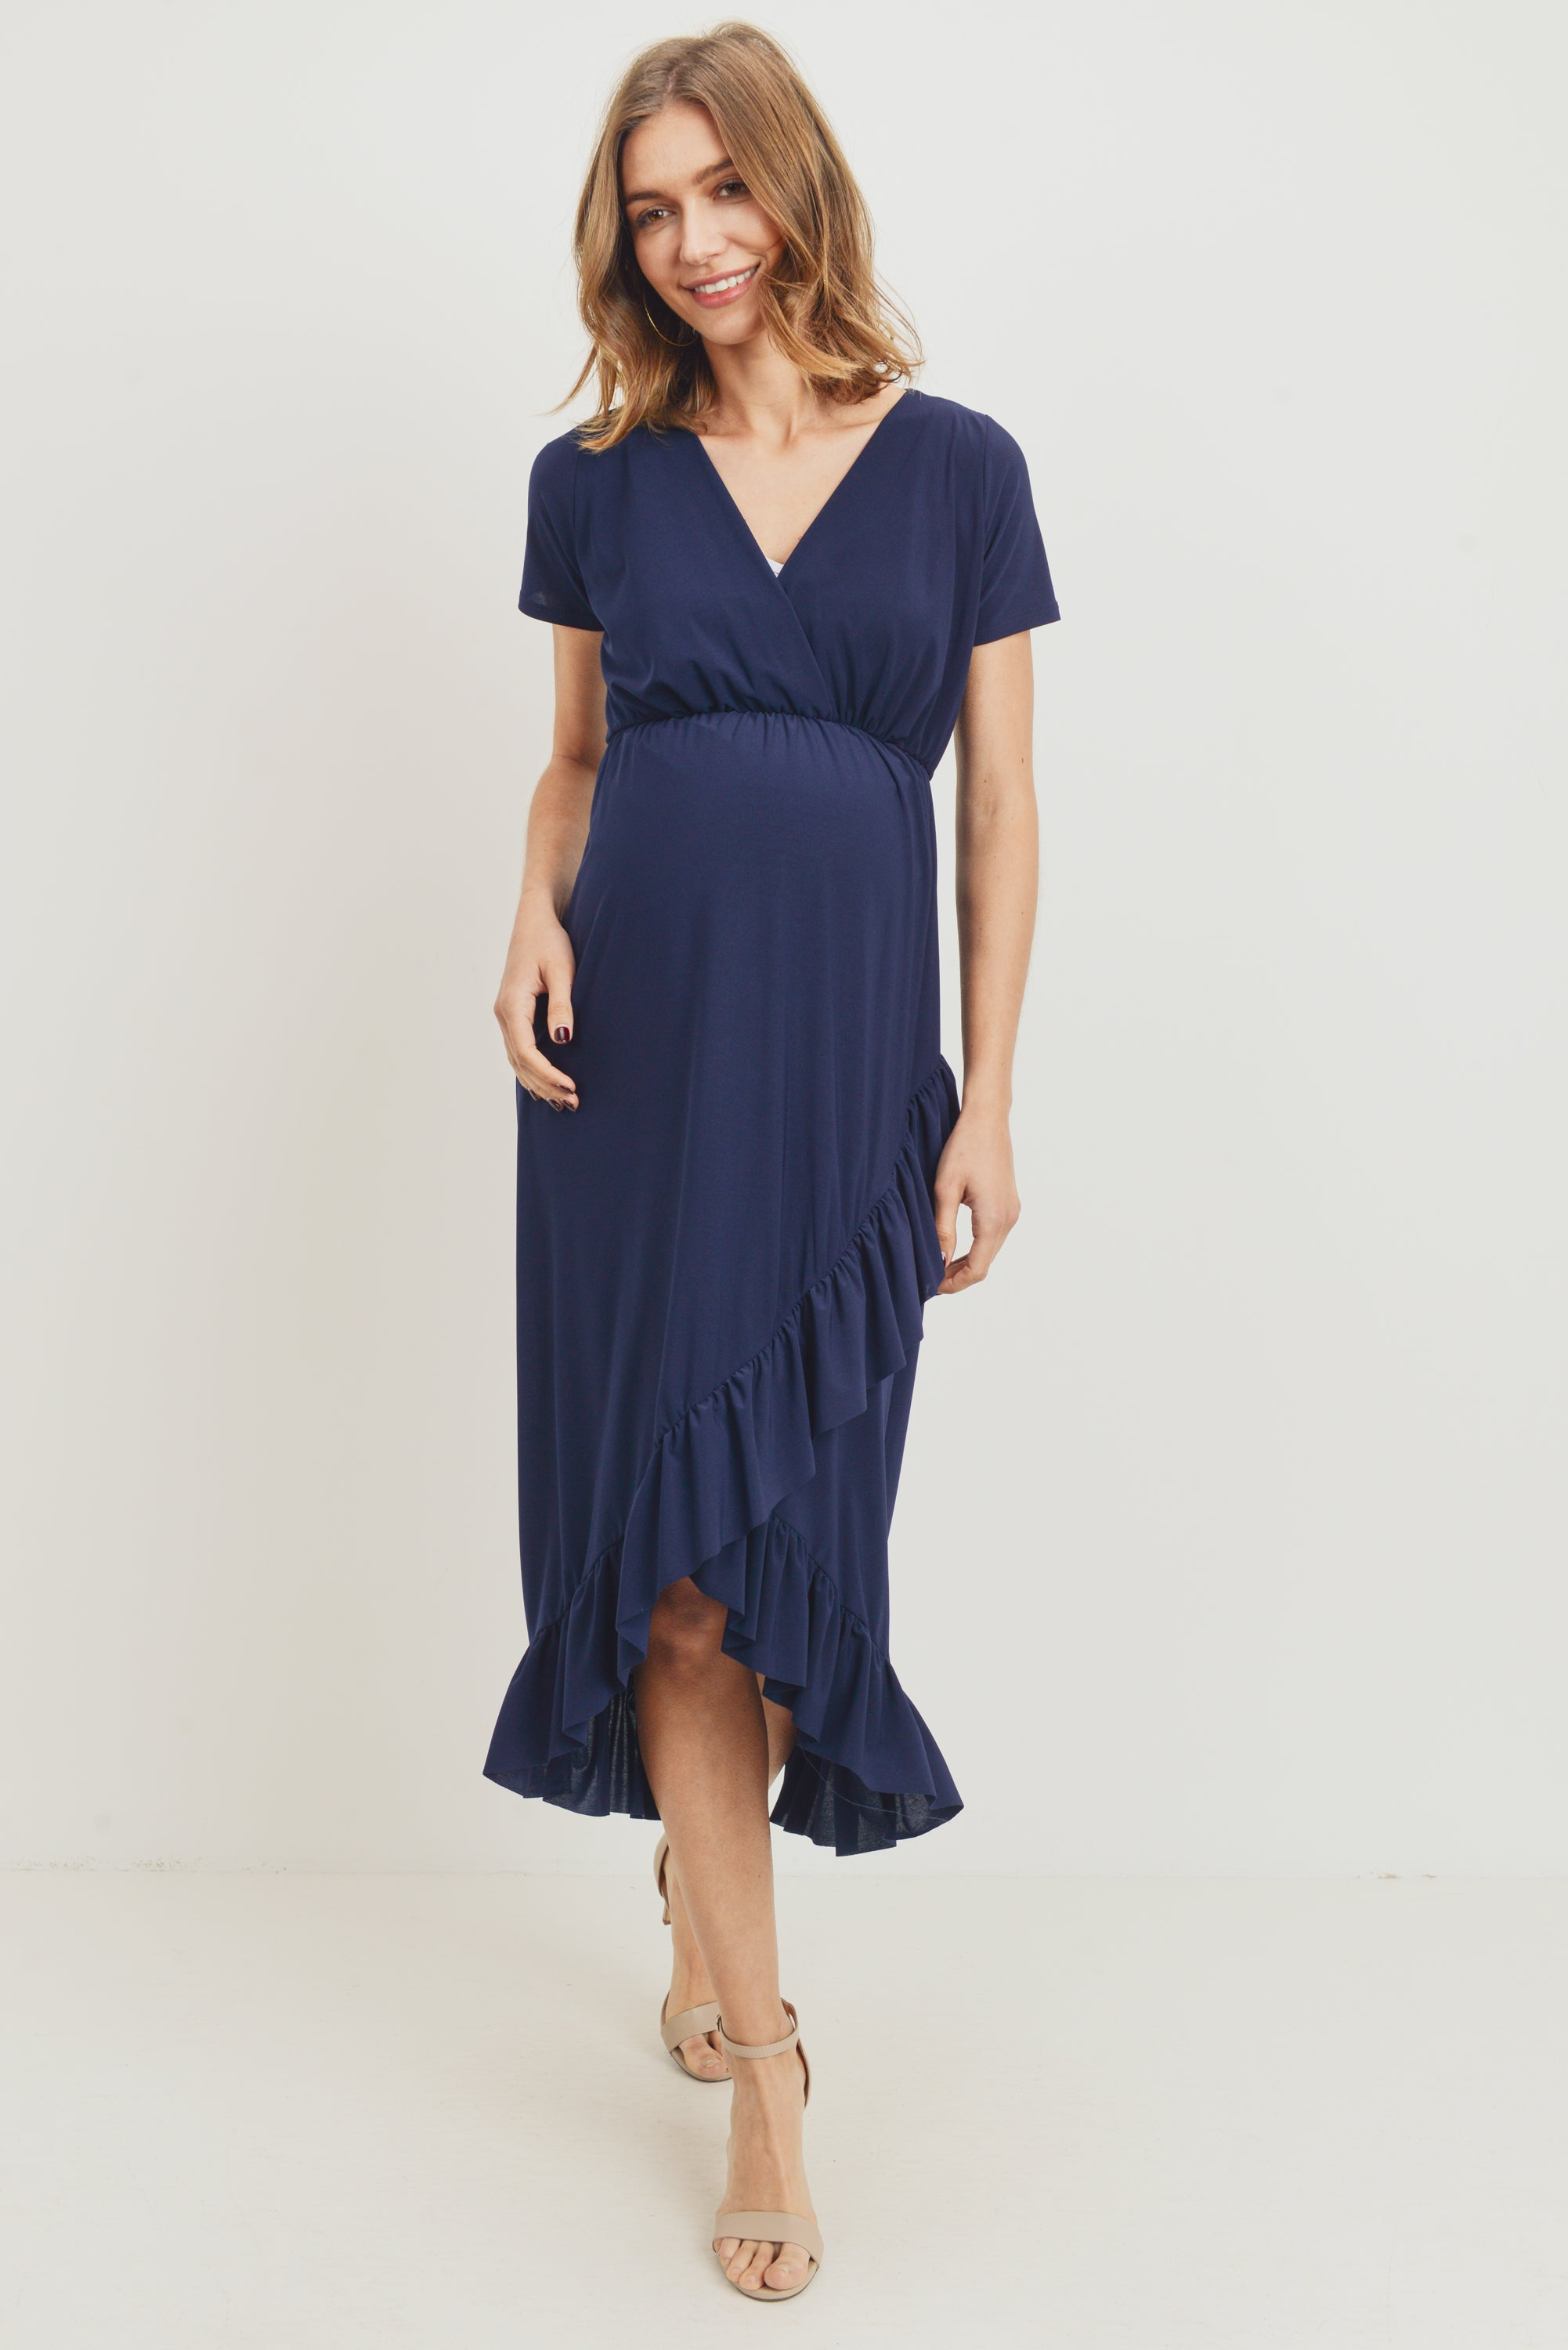 Ruffled Trim V-Neck Maternity Dress